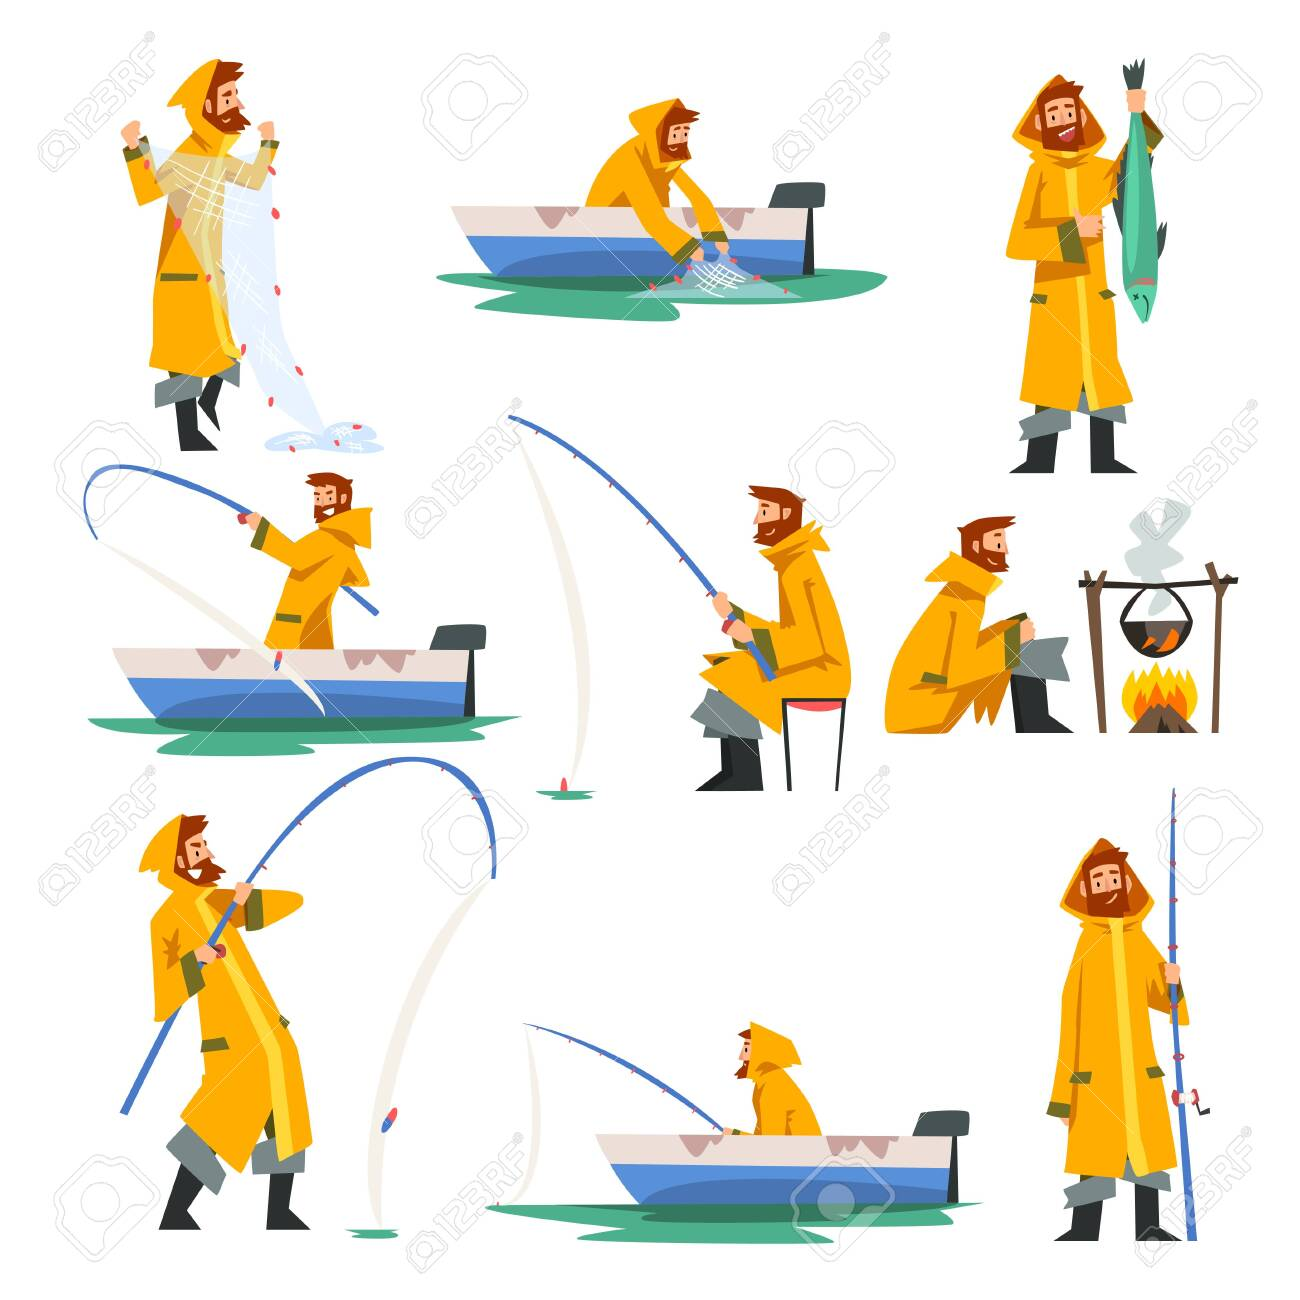 Fisherman Fishing with Net and Fishing Rod in Boat, Man Cooking on Bonfire Vector Illustration on White Background. - 124222293